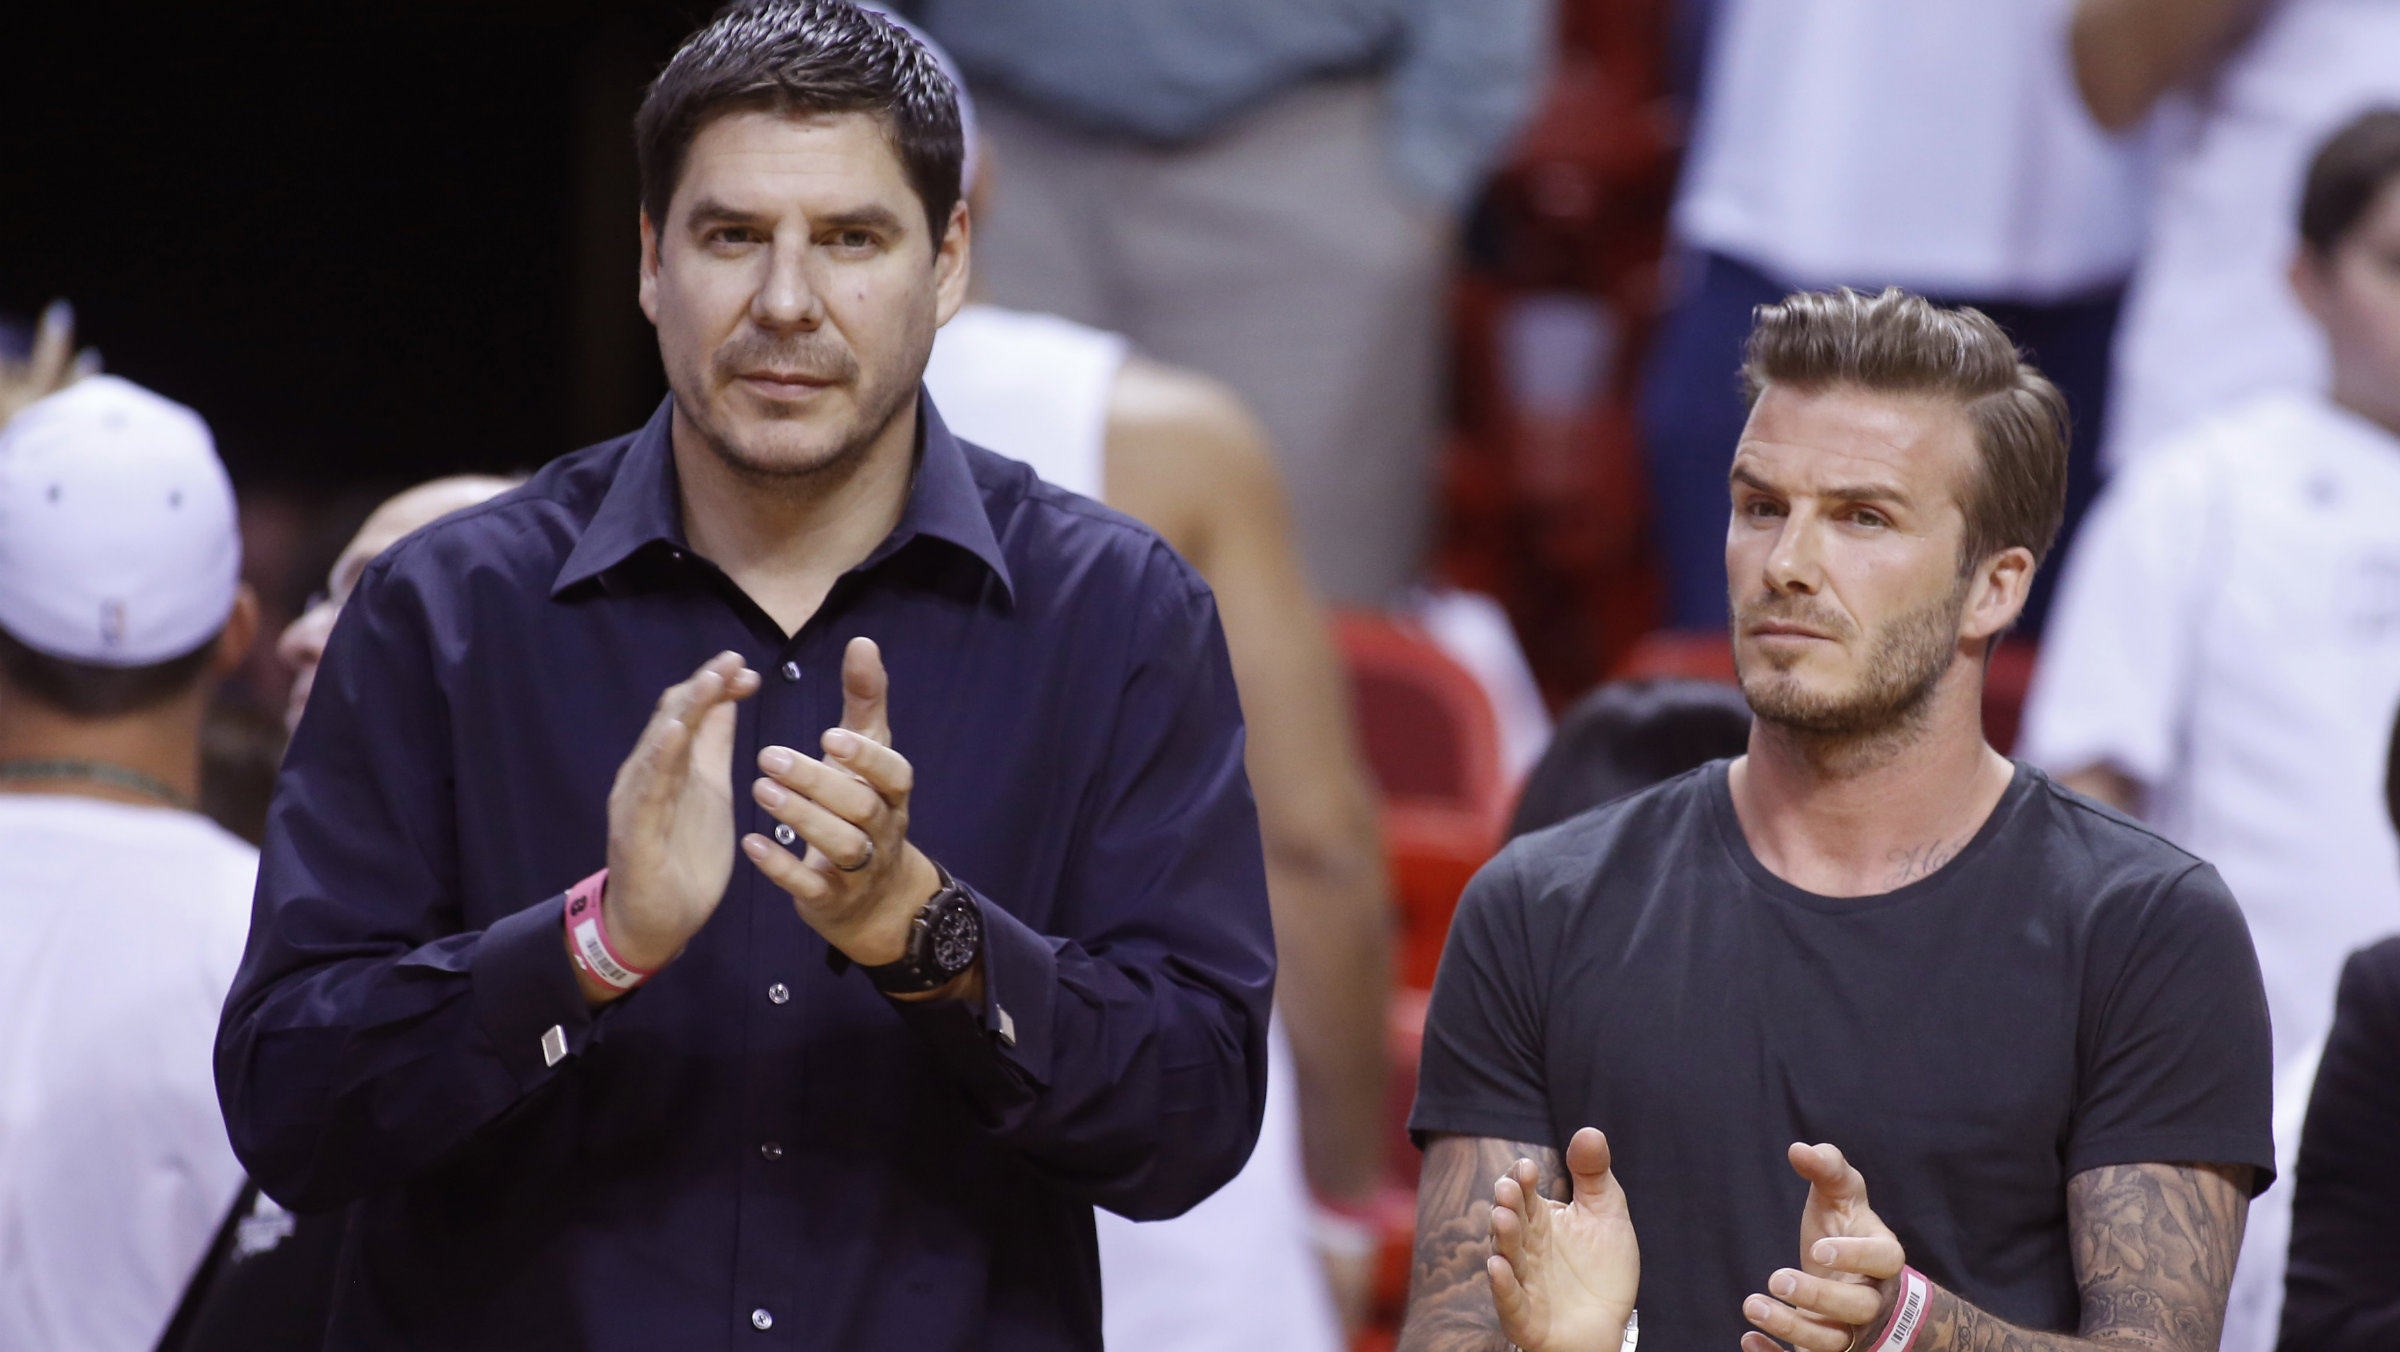 Former soccer player David Beckham (R) and Marcelo Claure, CEO of Brightstar applaud before Game 5 of the NBA Eastern Conference final